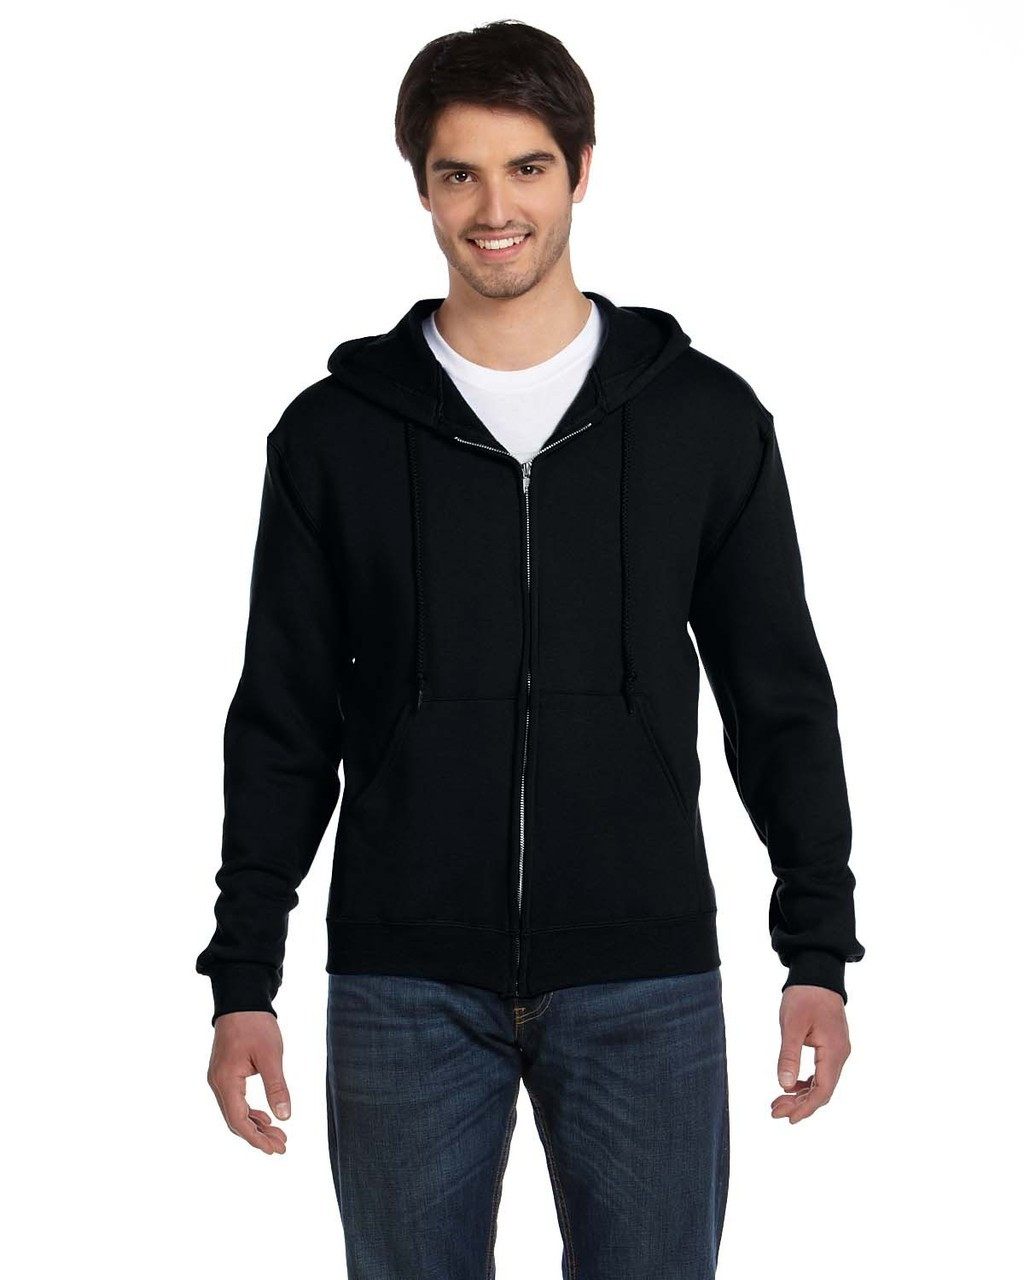 Black - 82230 Fruit of the Loom Supercotton™ Full-Zip Hoodie | Blankclothing.ca